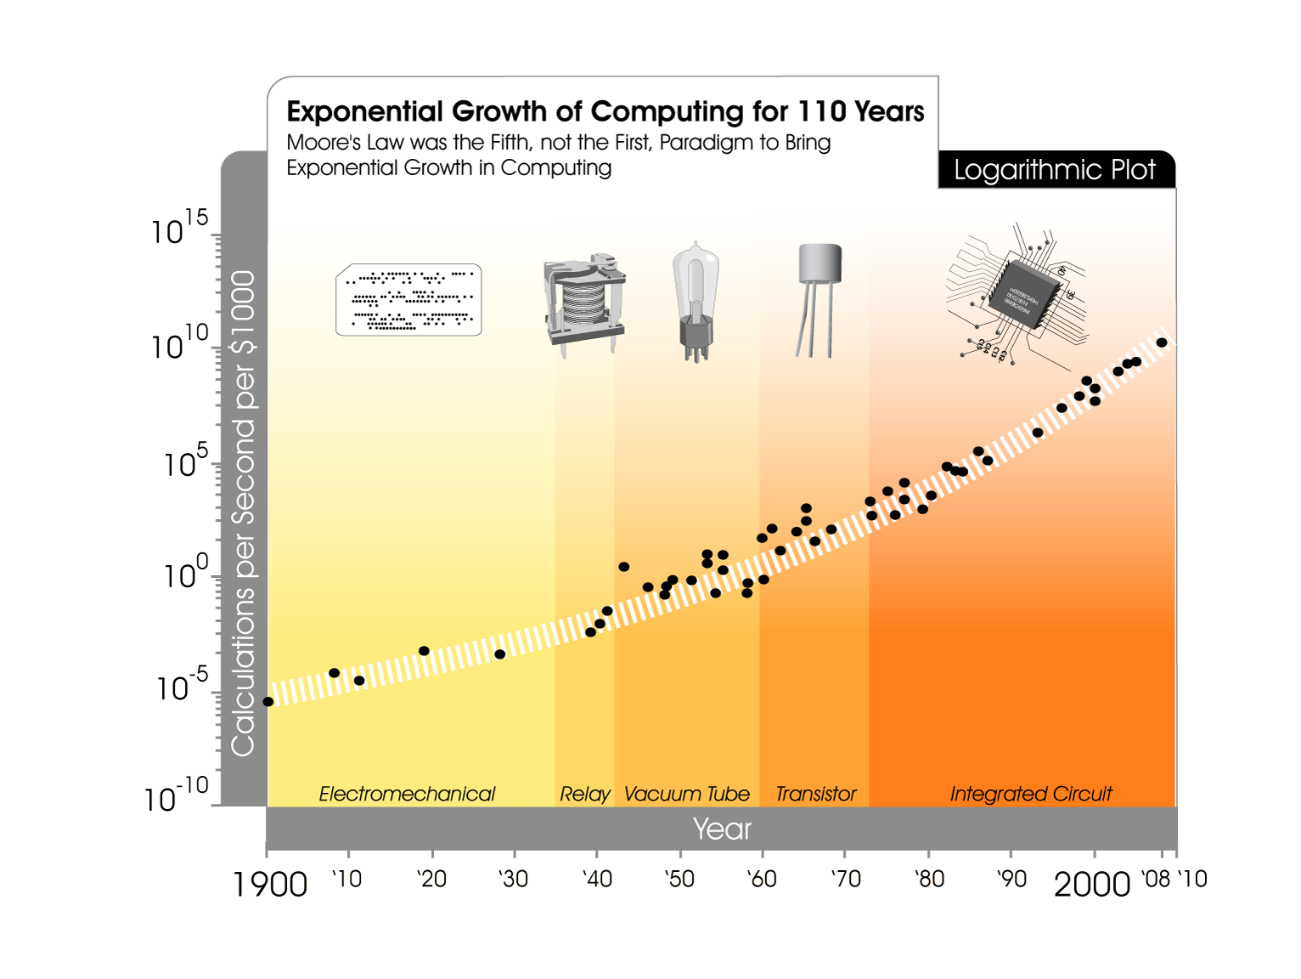 Exponential growth of computing for 110 years